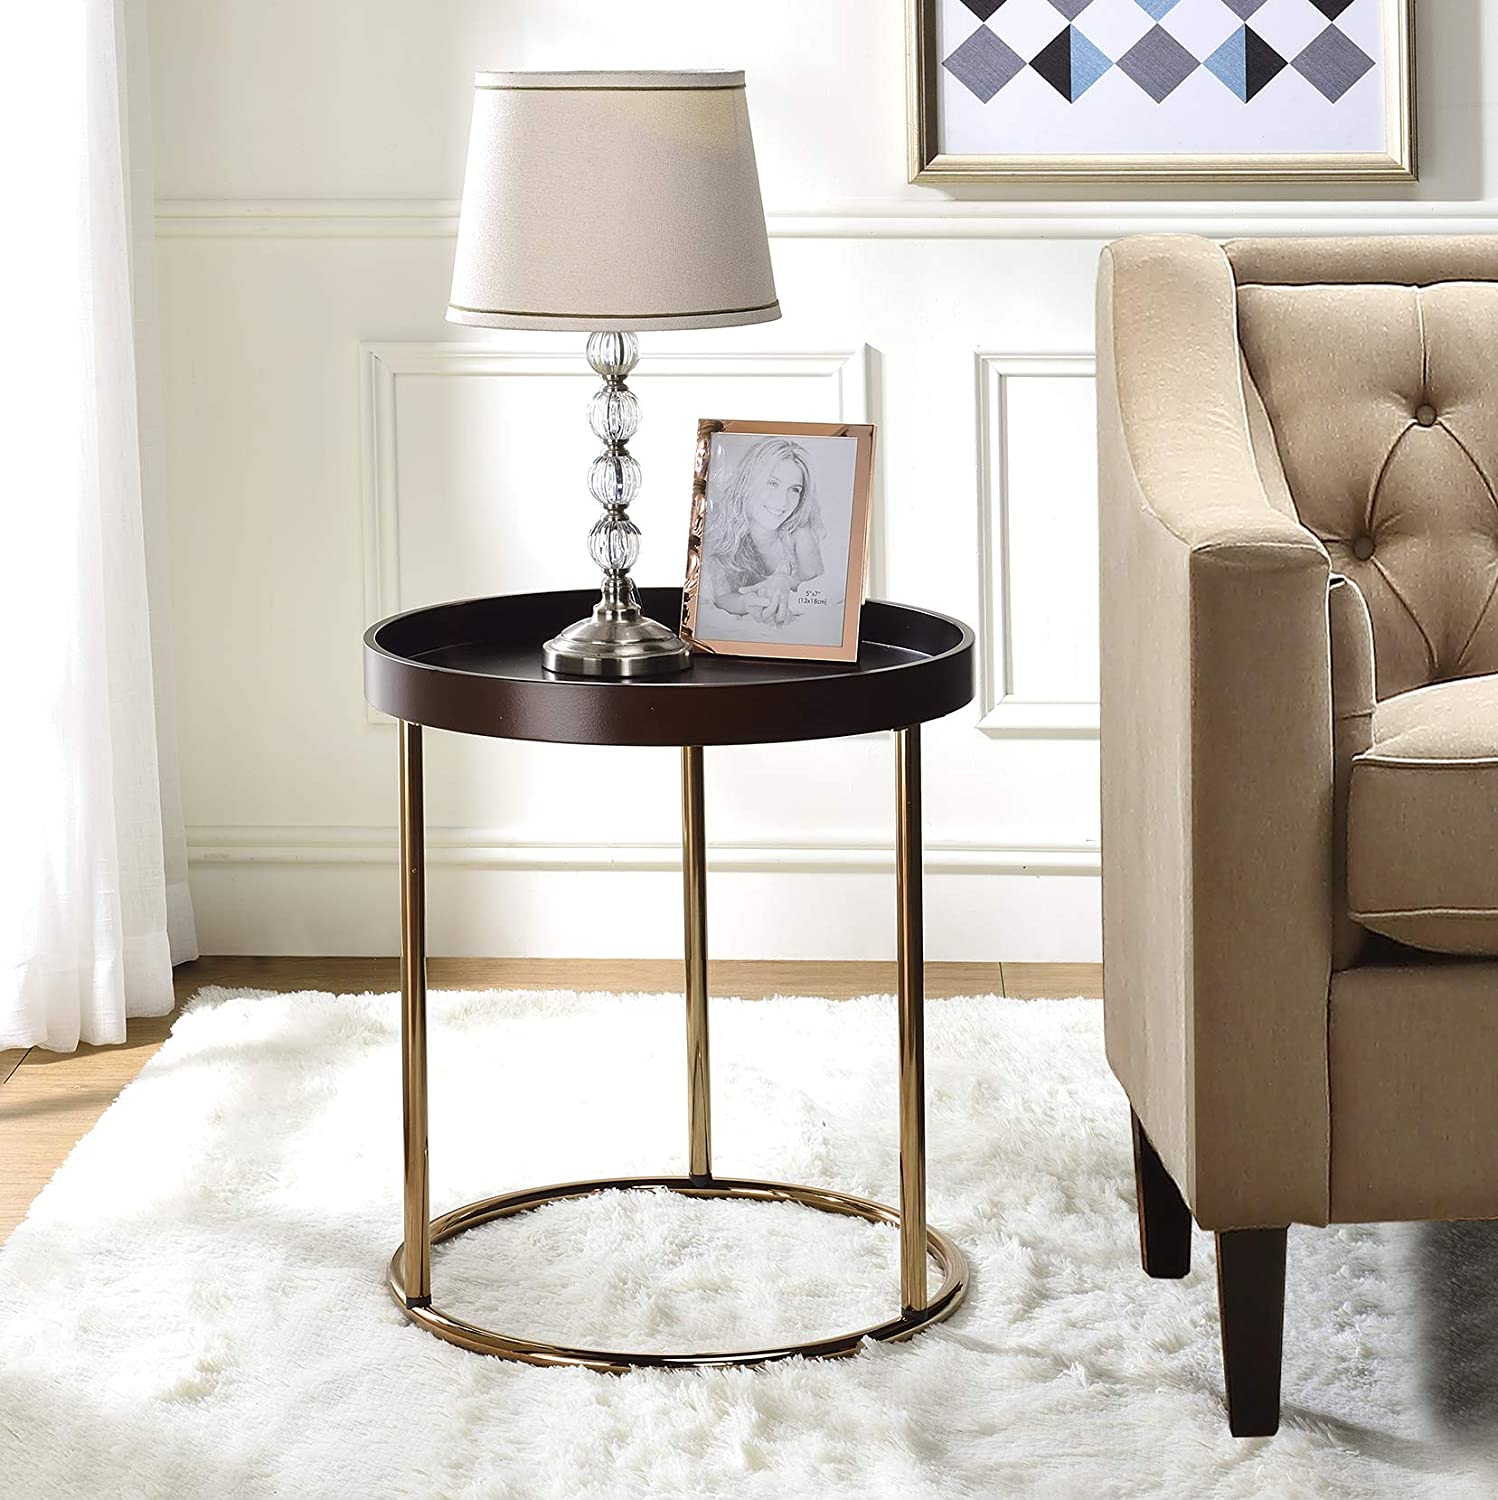 Roundhill Furniture Genoa Round Tray Table with Metal Frame, Espresso